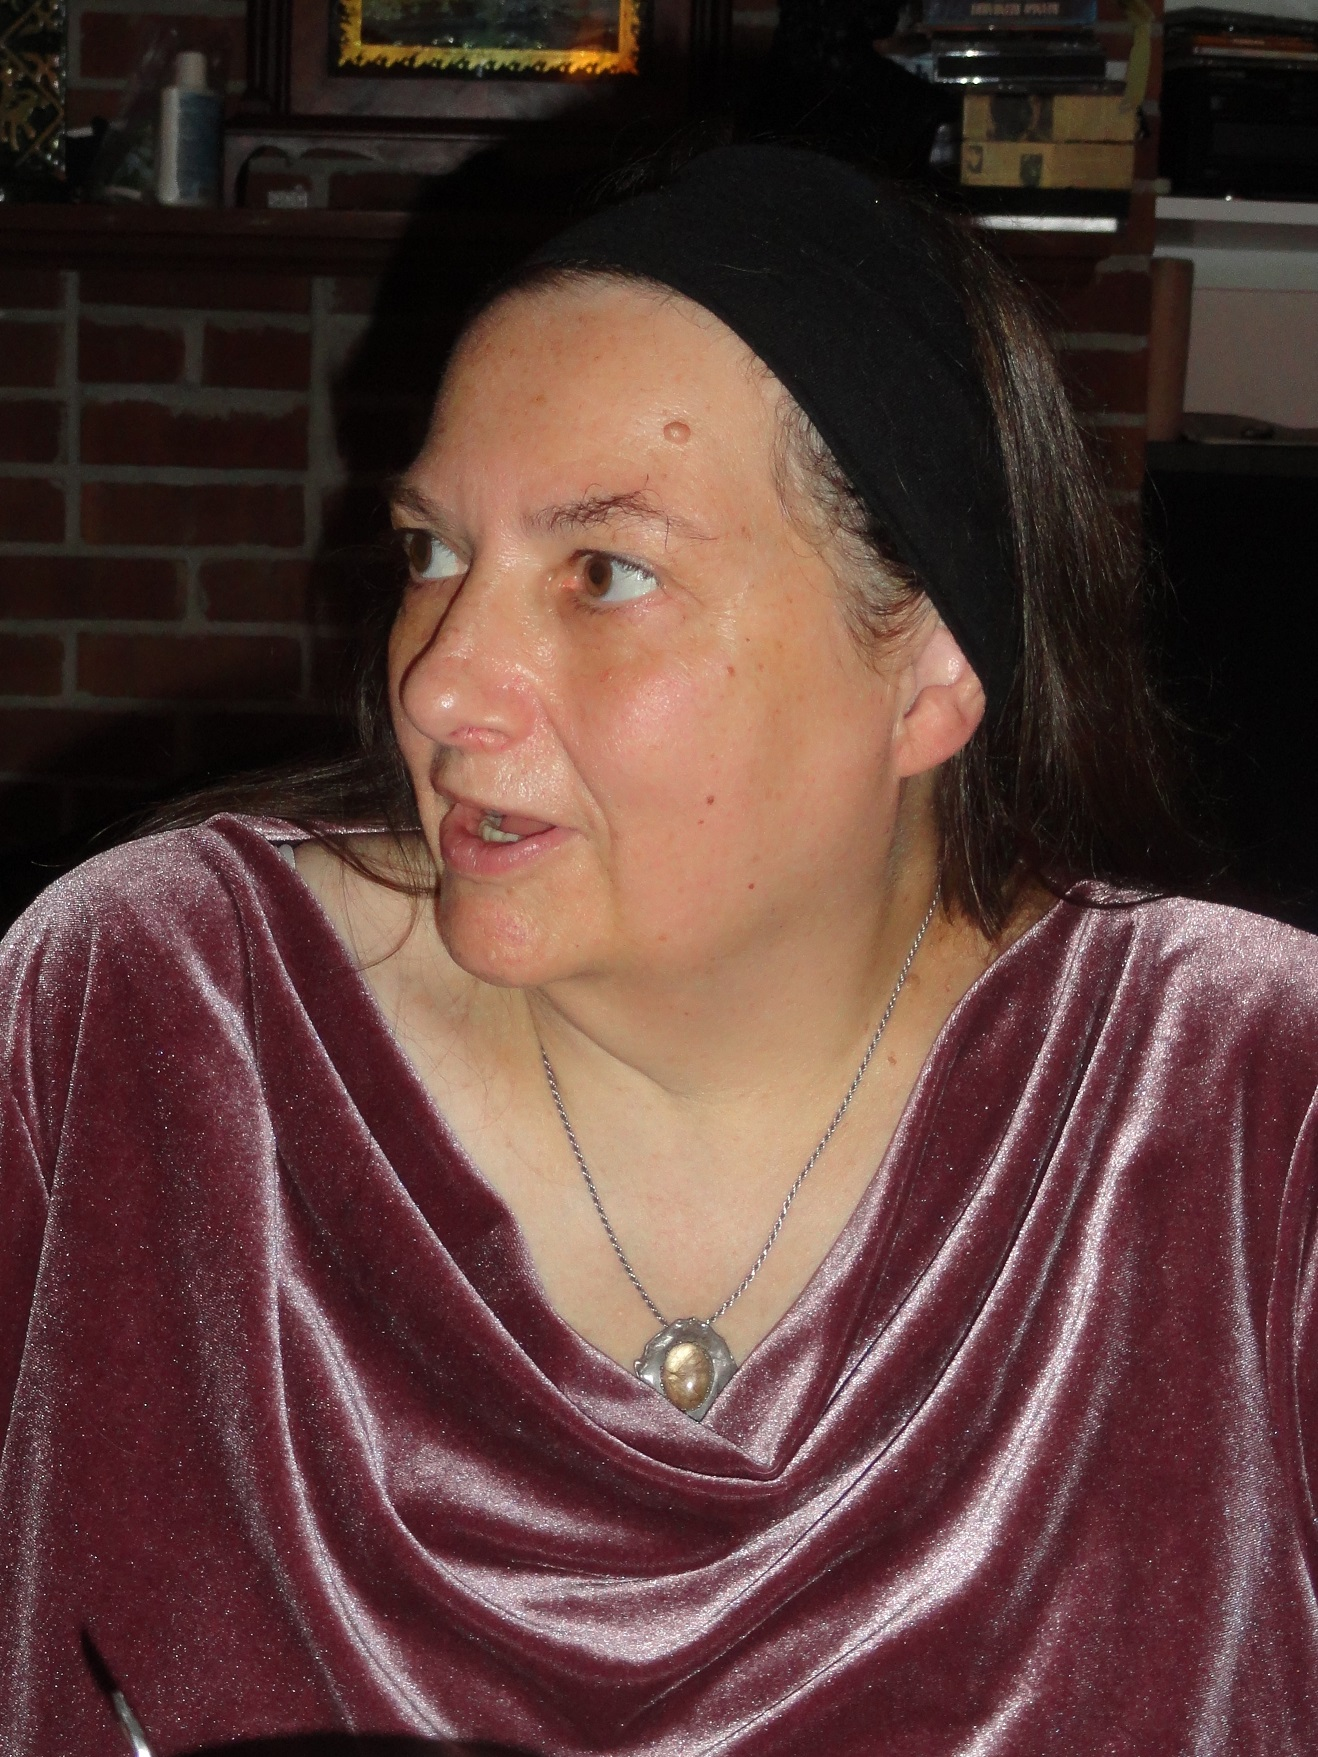 The Poetry Show Podcast looks at Peggy Shumaker